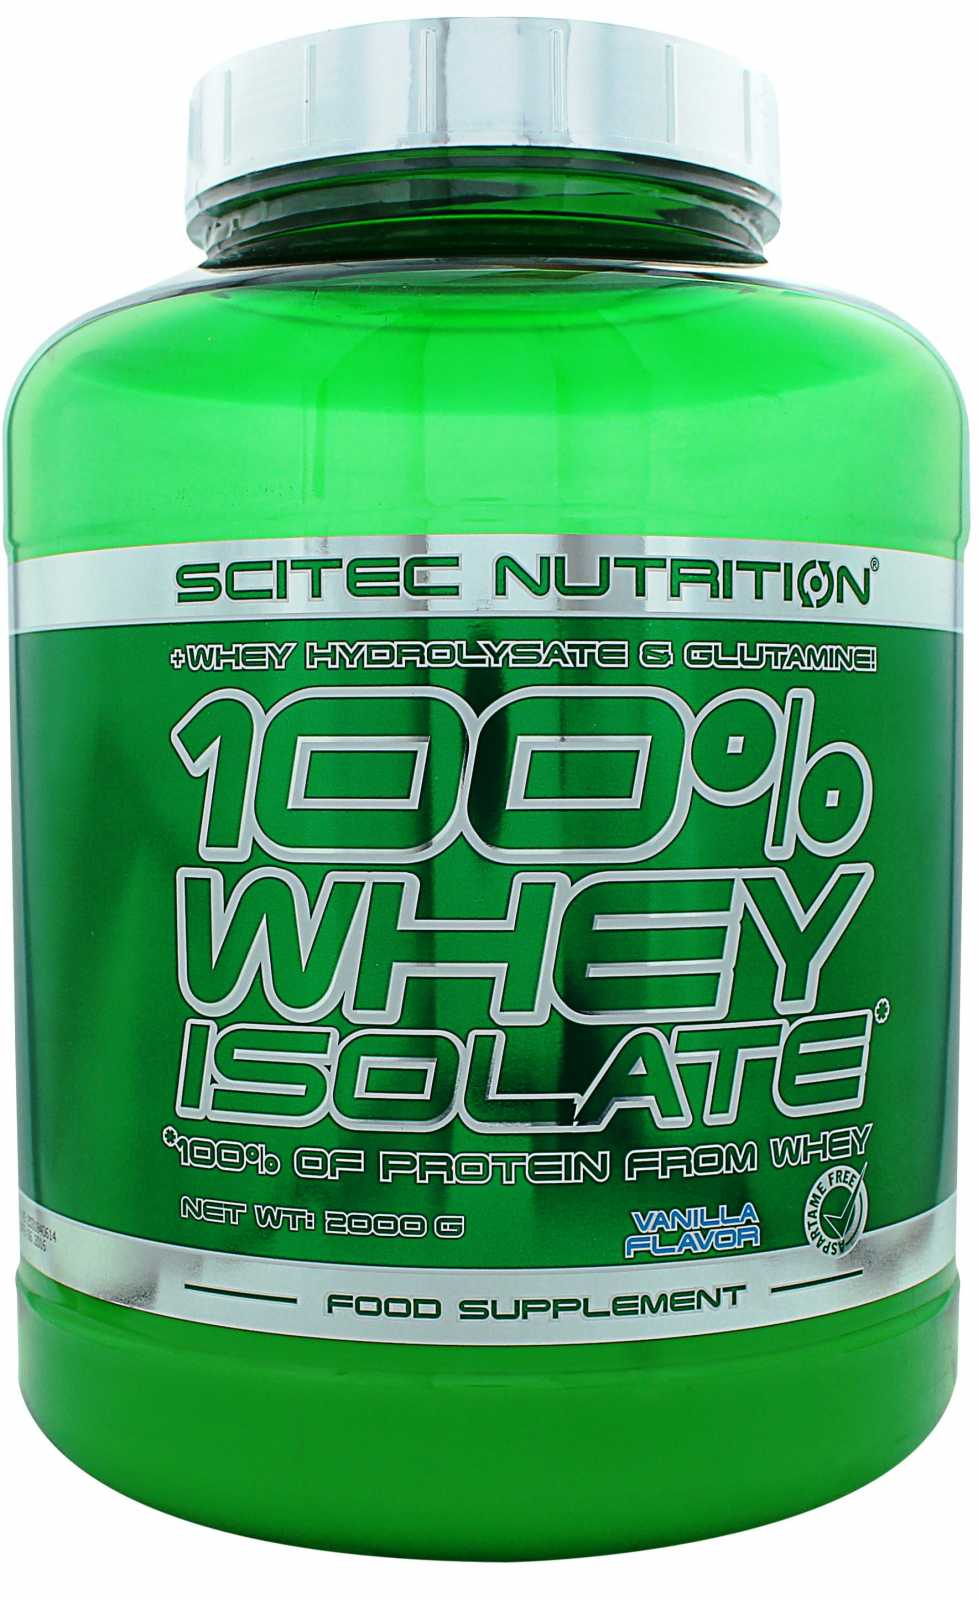 Isolate nutrition